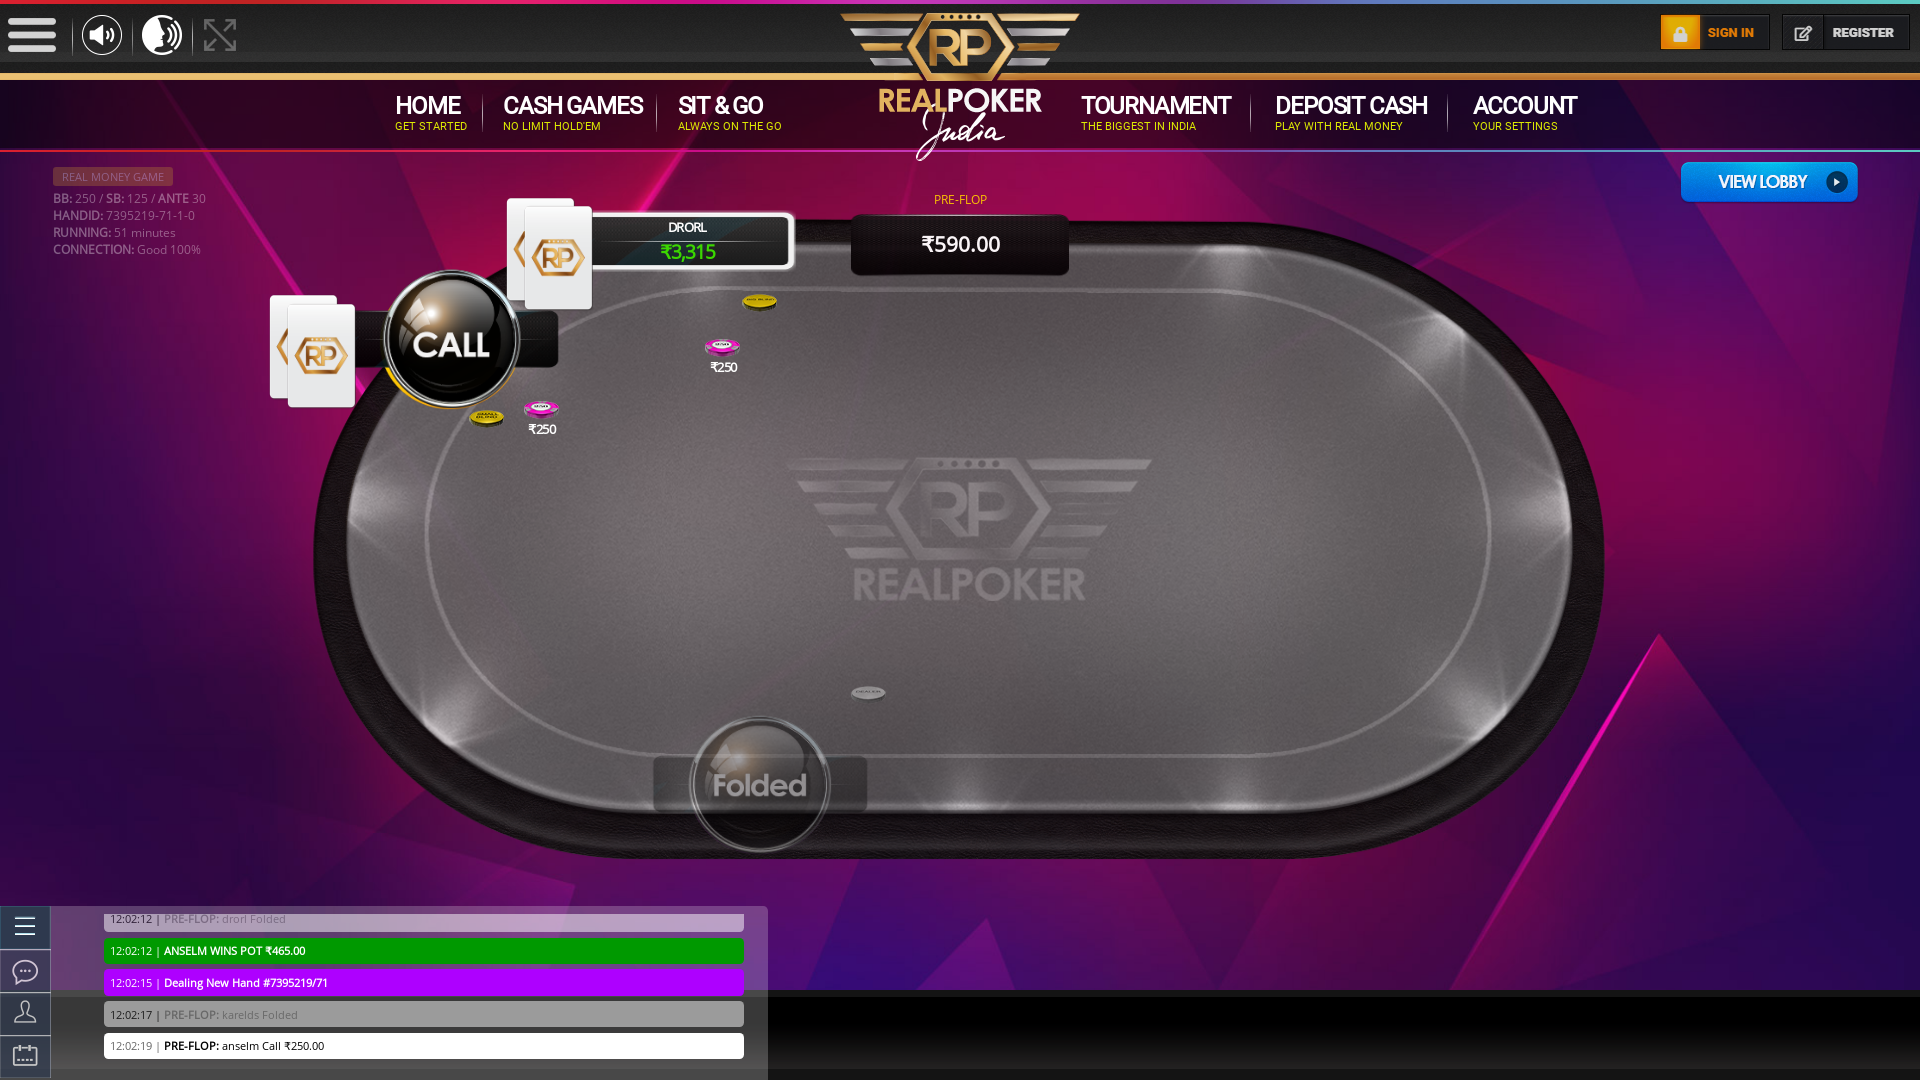 Real poker 10 player table in the 50th minute of the match